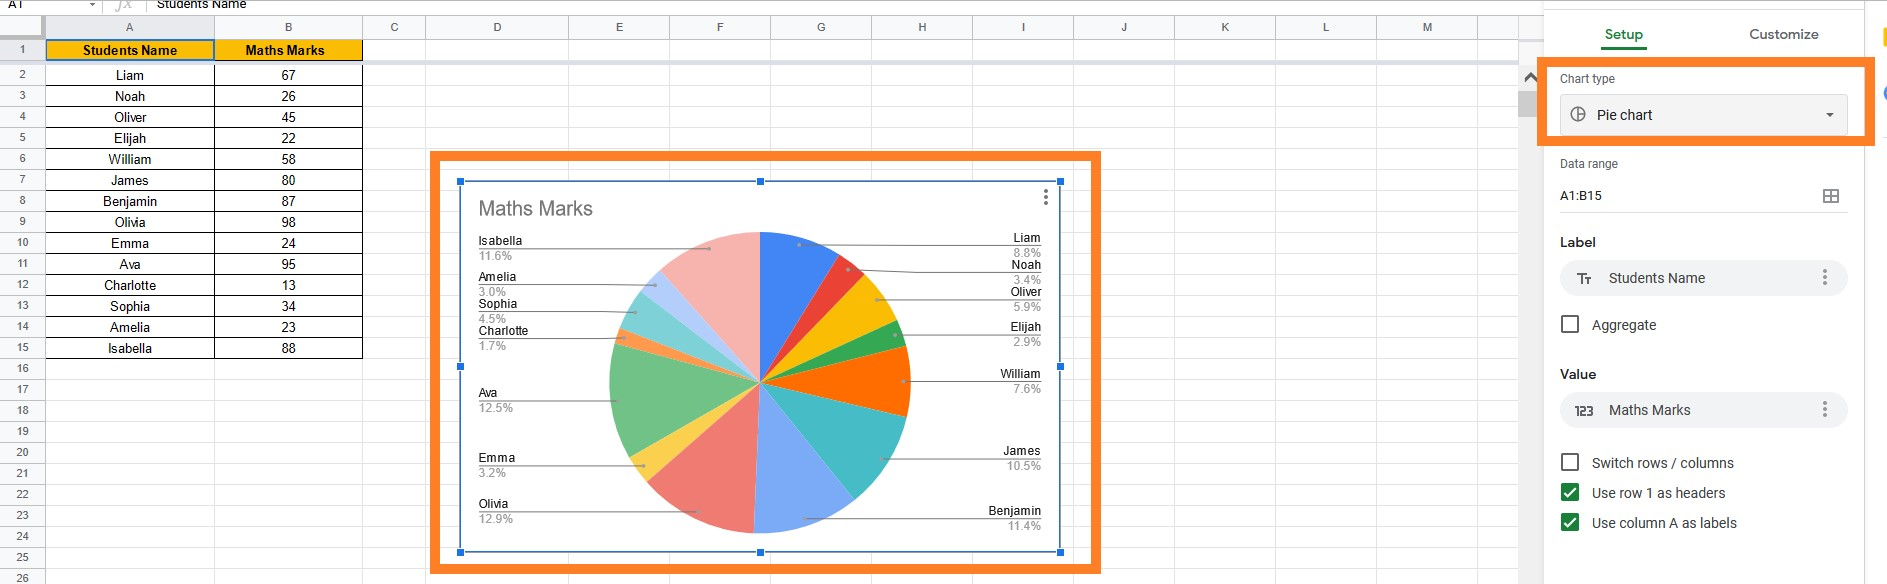 how to make pie chart in google sheets